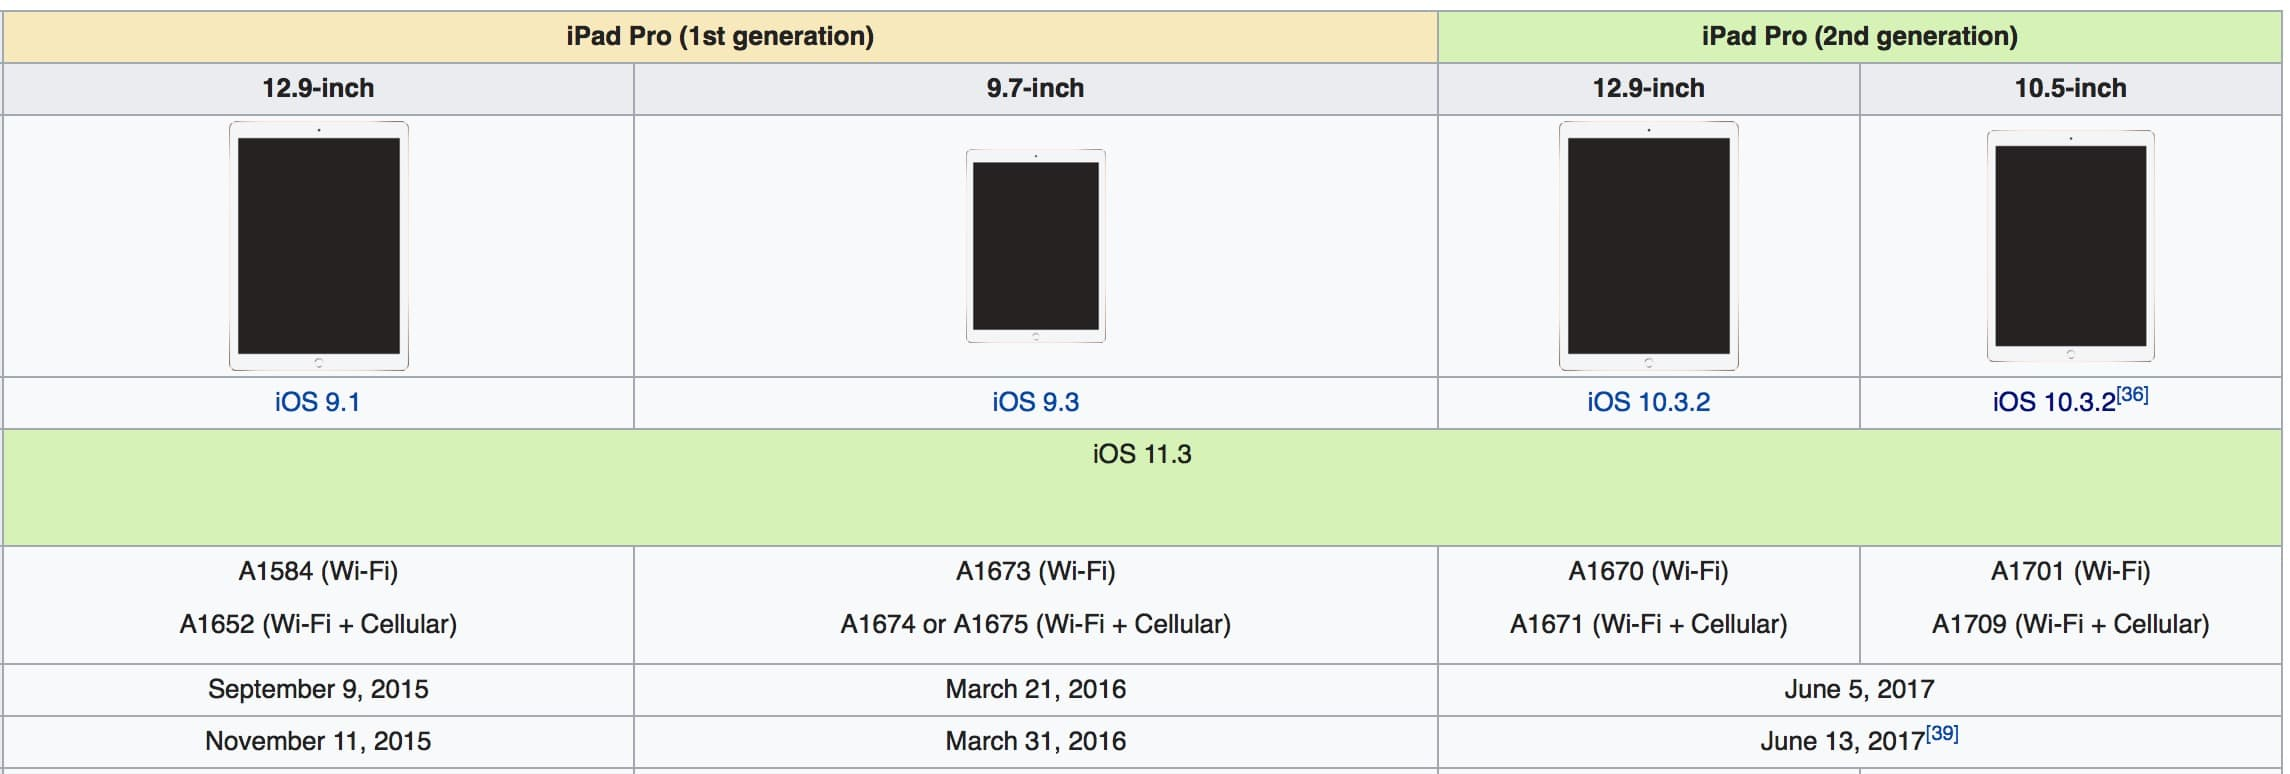 Ipad Pro Wiki Update 25jun18